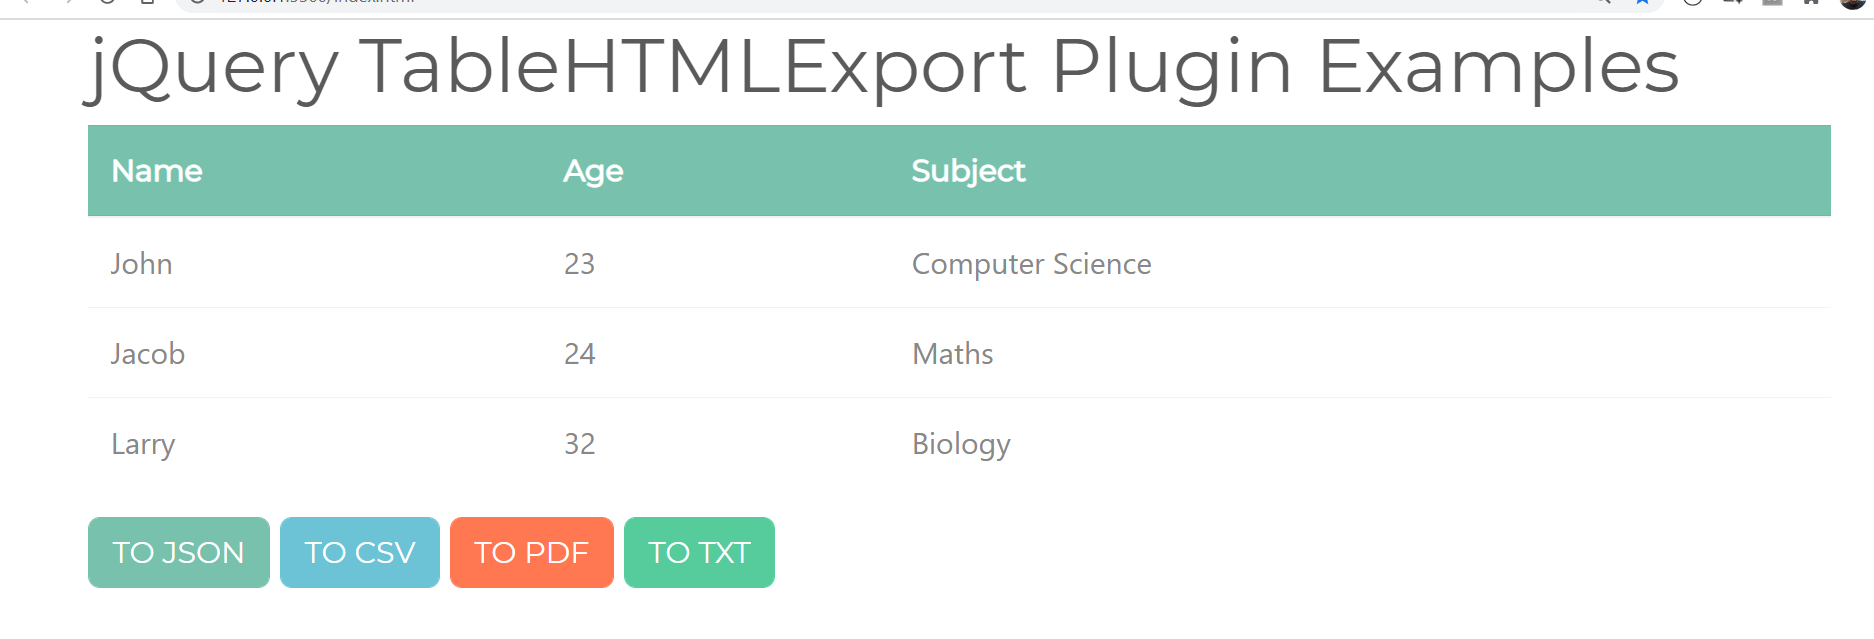 How to Export HTML Table to PDF/CSV/JSON/TXT Files Using jsPDF & TableHtmlExport Library 2020